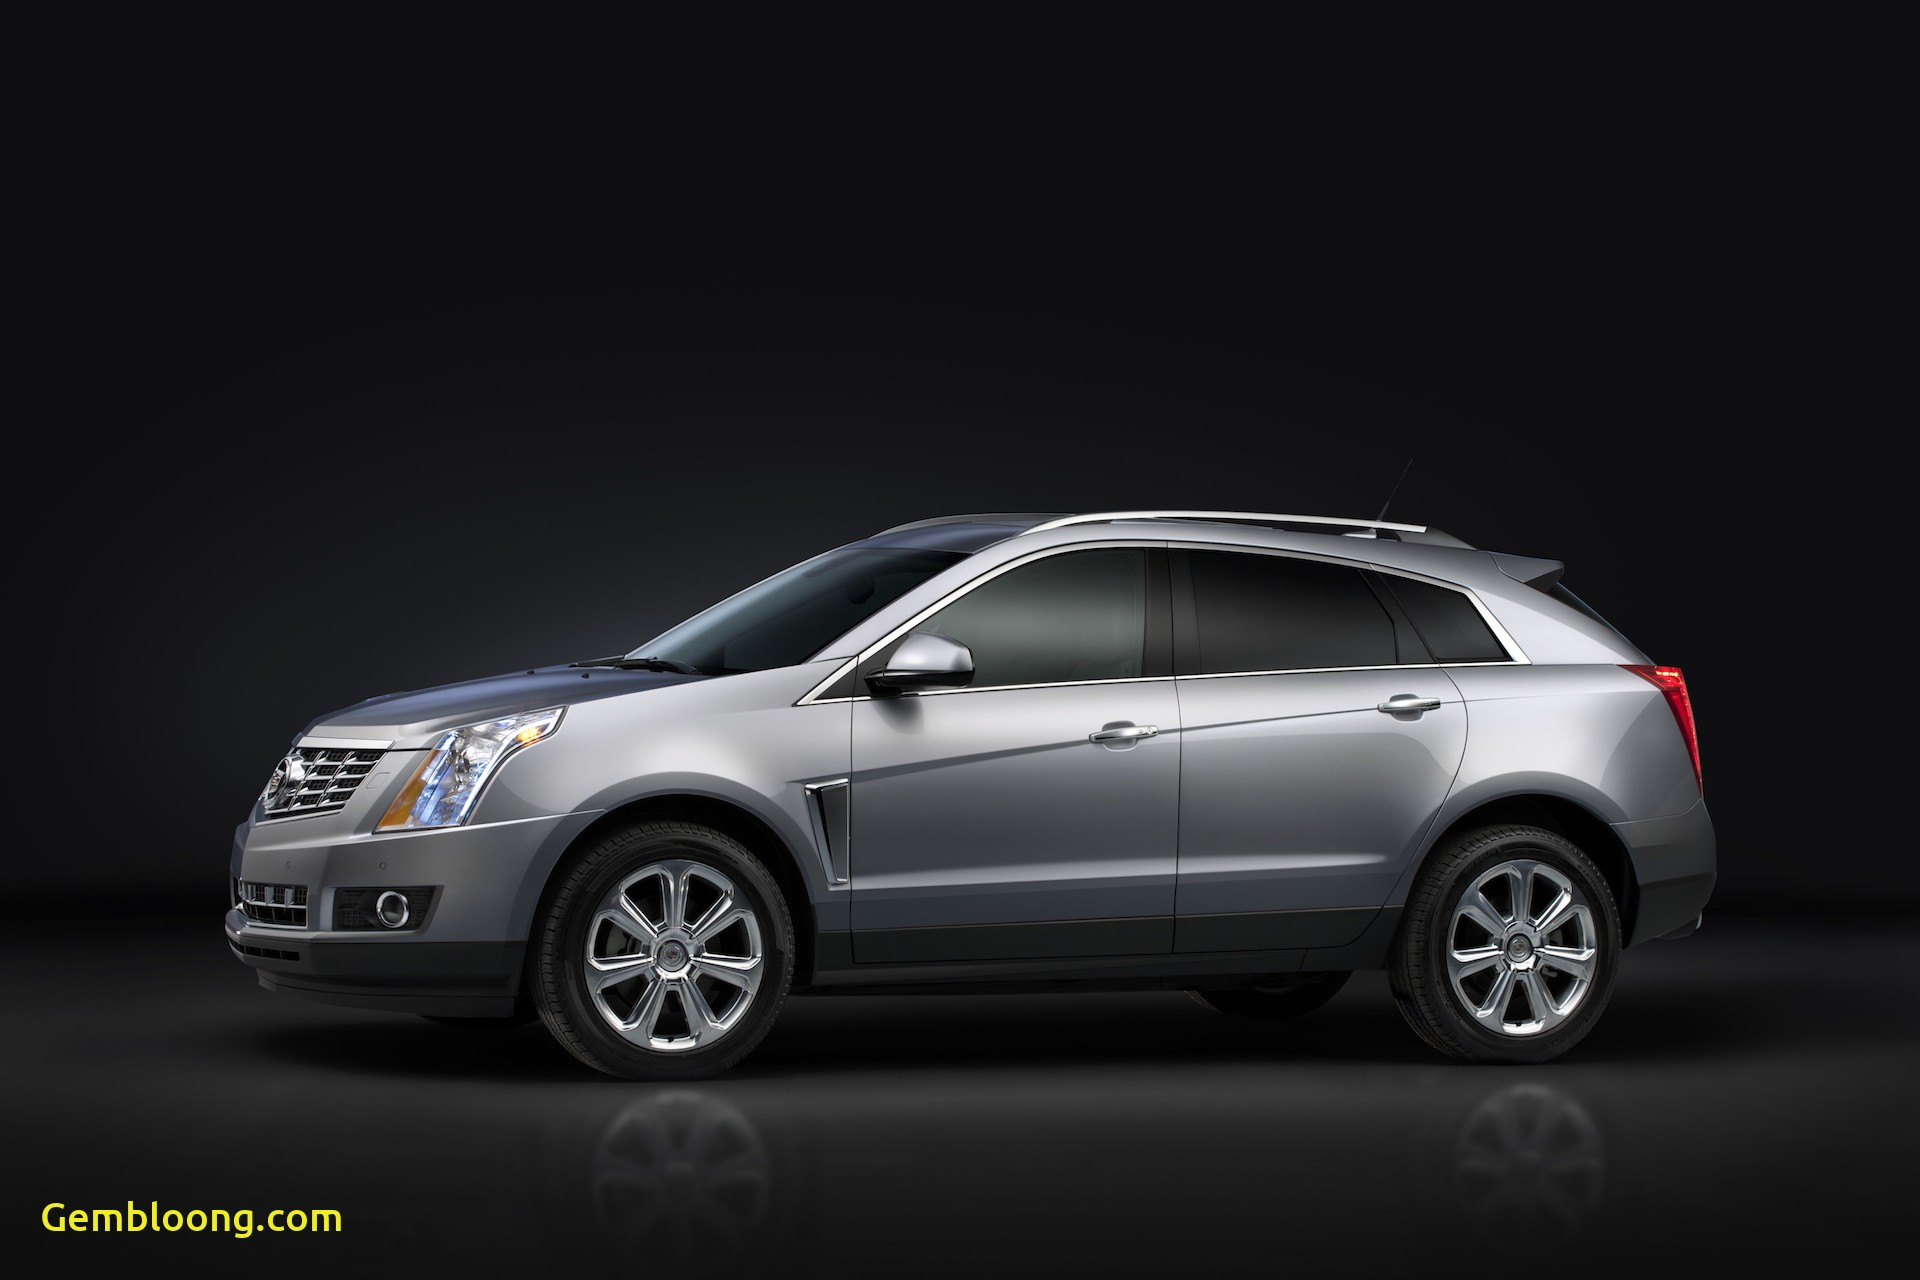 2012 Cadillac Srx Beautiful New and Used Cadillac Srx Prices S Reviews Specs